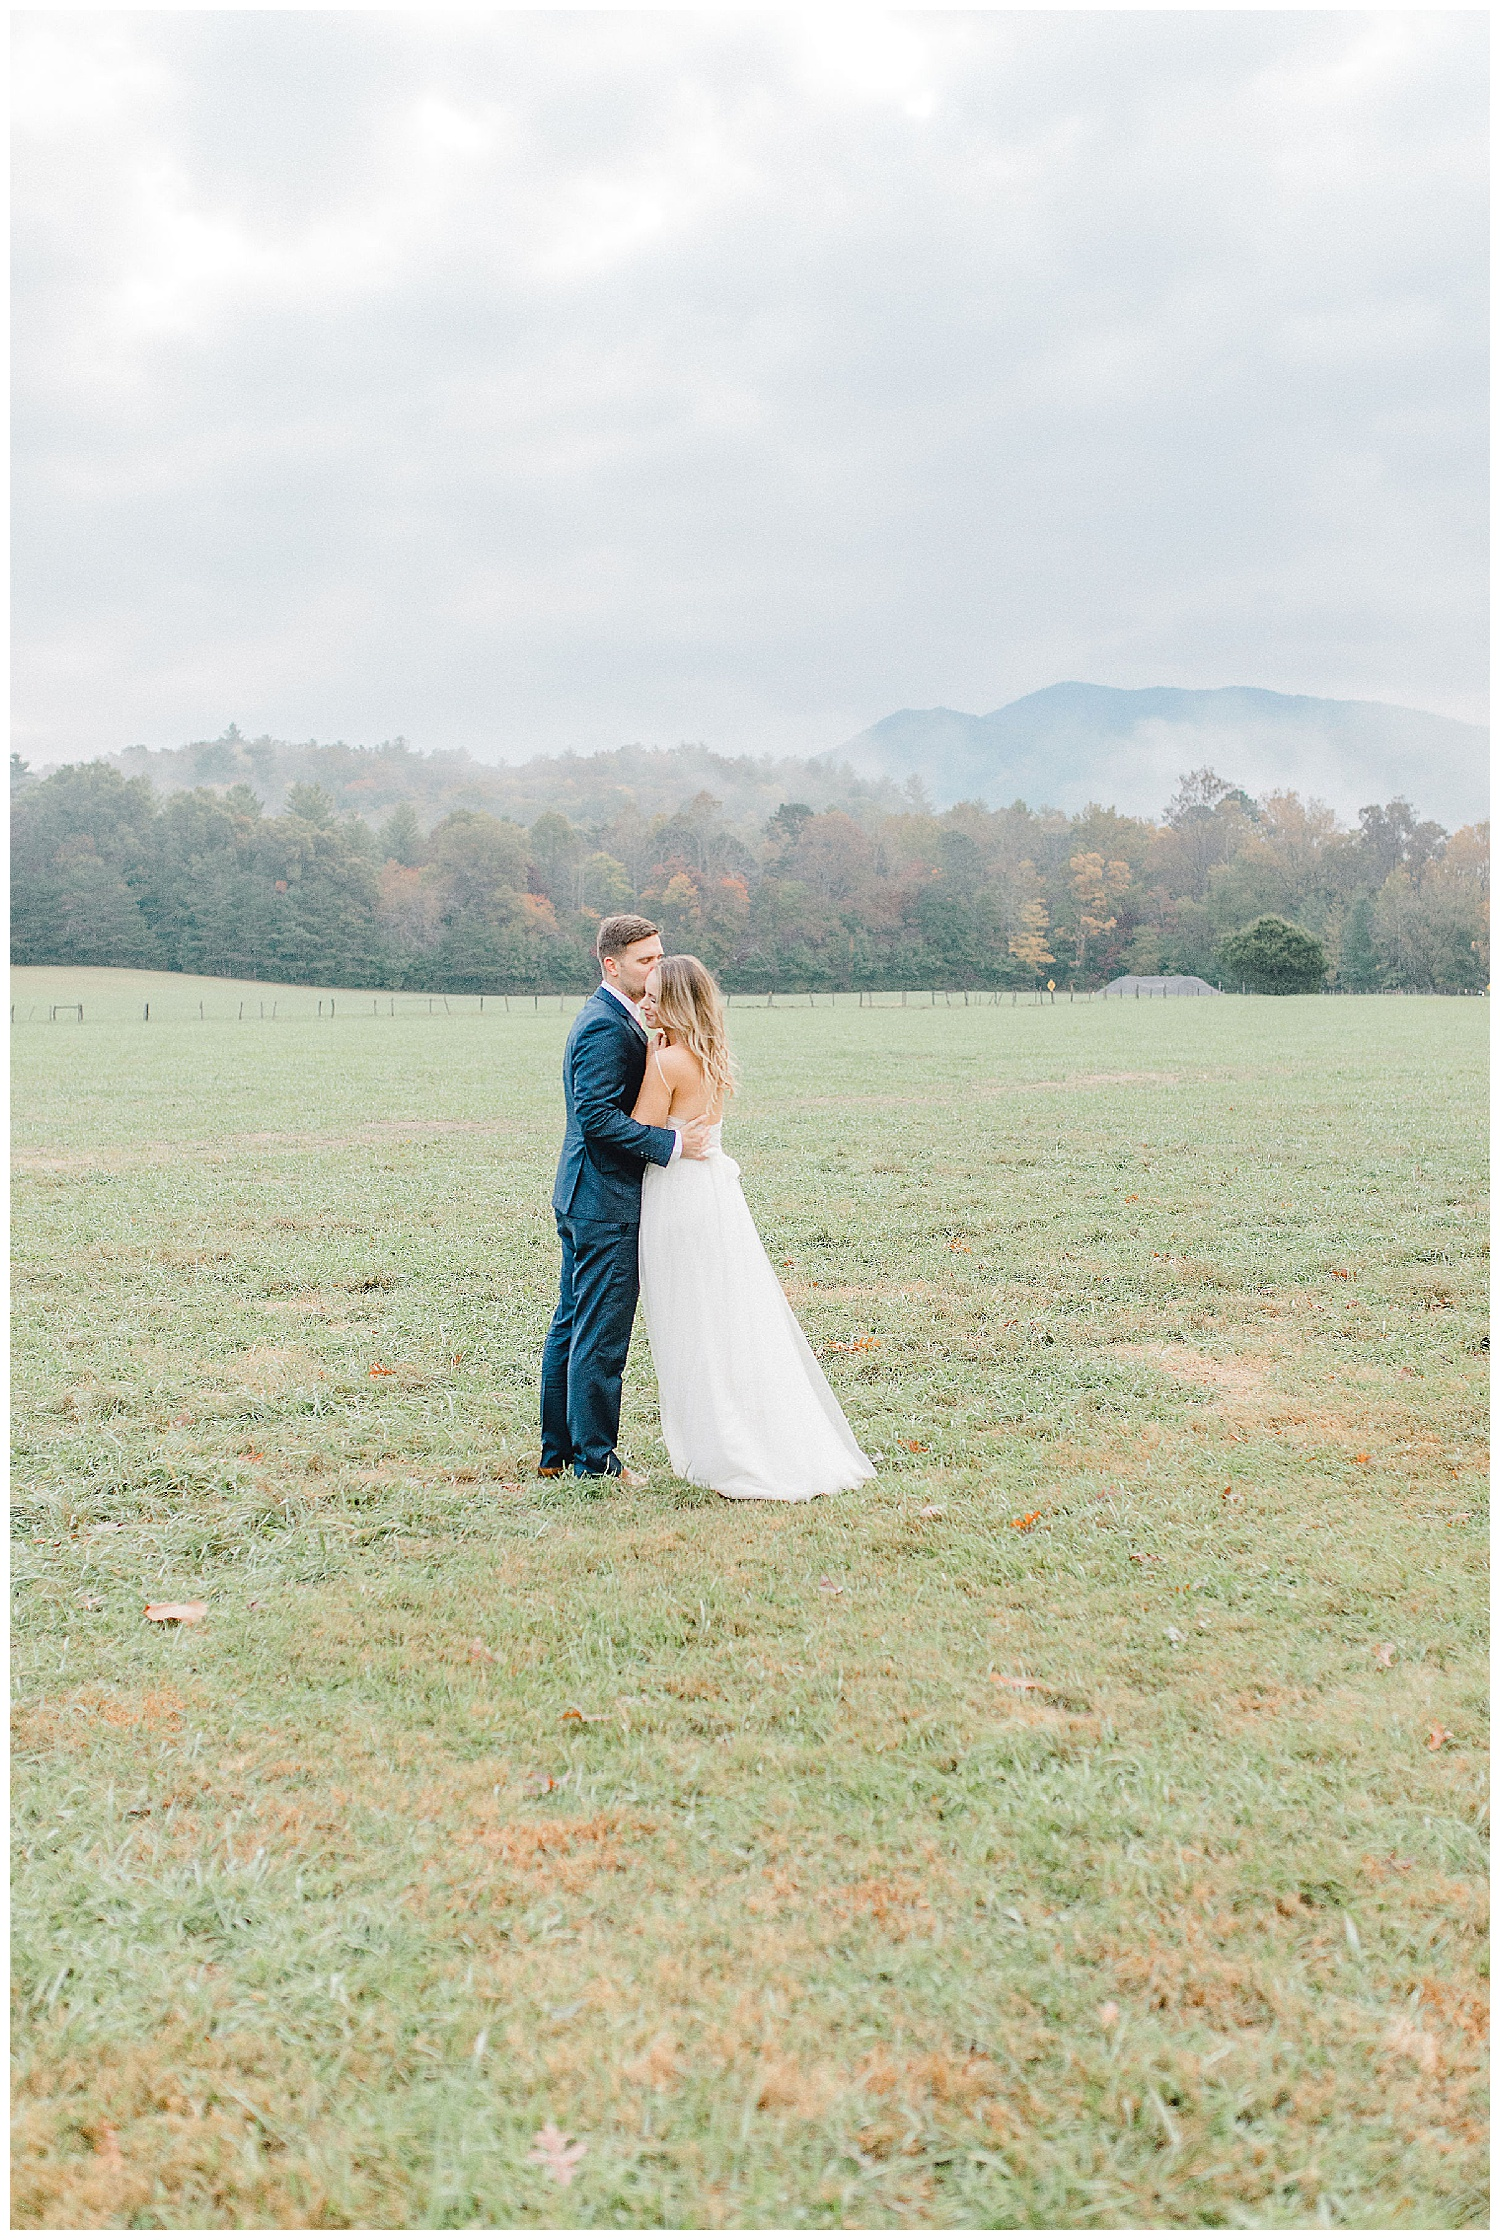 Emma Rose Company recently got to travel all the way to Nashville to photograph the most beautiful post-wedding bride and groom portraits in the Great Smoky Mountains with a gorgeous couple! Nashville wedding inspiration at it's finest._0025.jpg